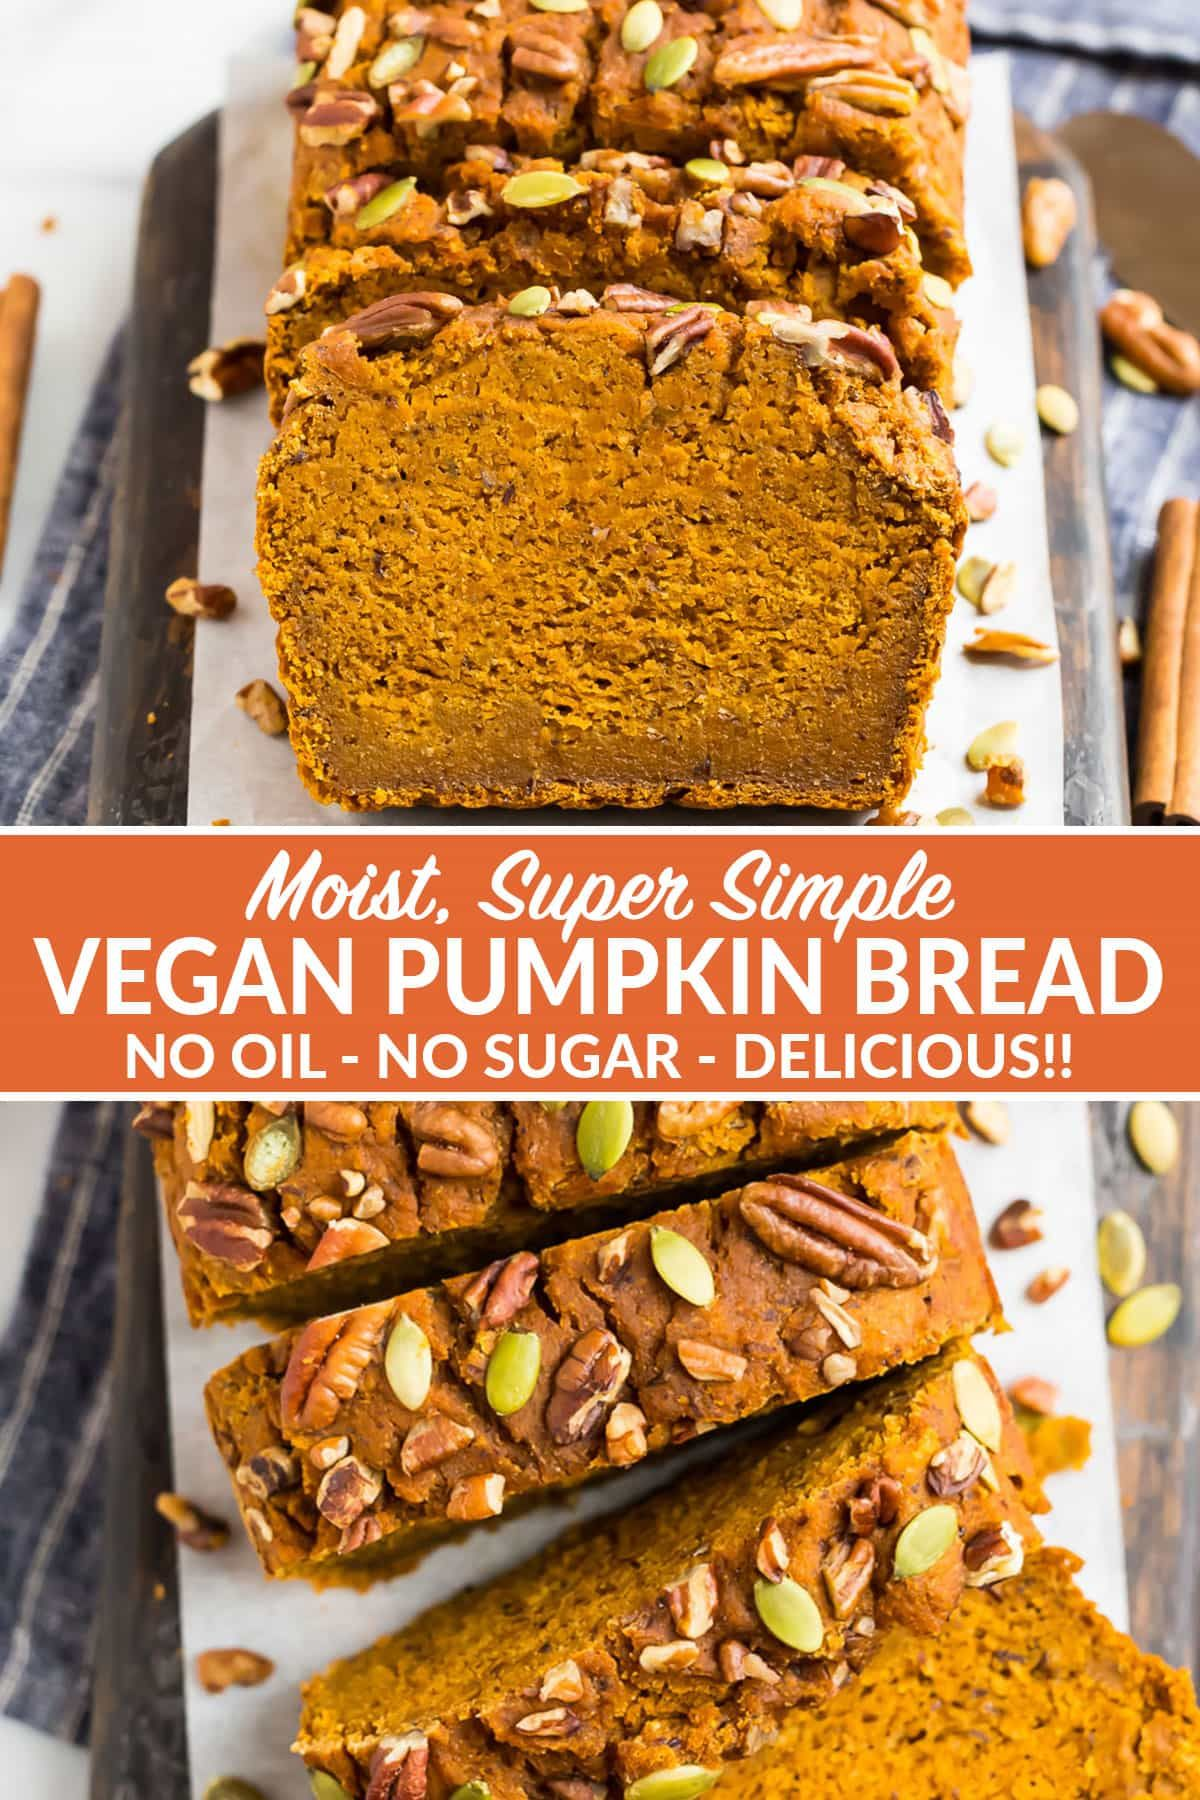 Moist Delicious Vegan Pumpkin Bread Made With Applesauce And No Oil And No Sugar Easy Packed Vegan Pumpkin Bread Vegan Pumpkin Recipes Healthy Pumpkin Bread